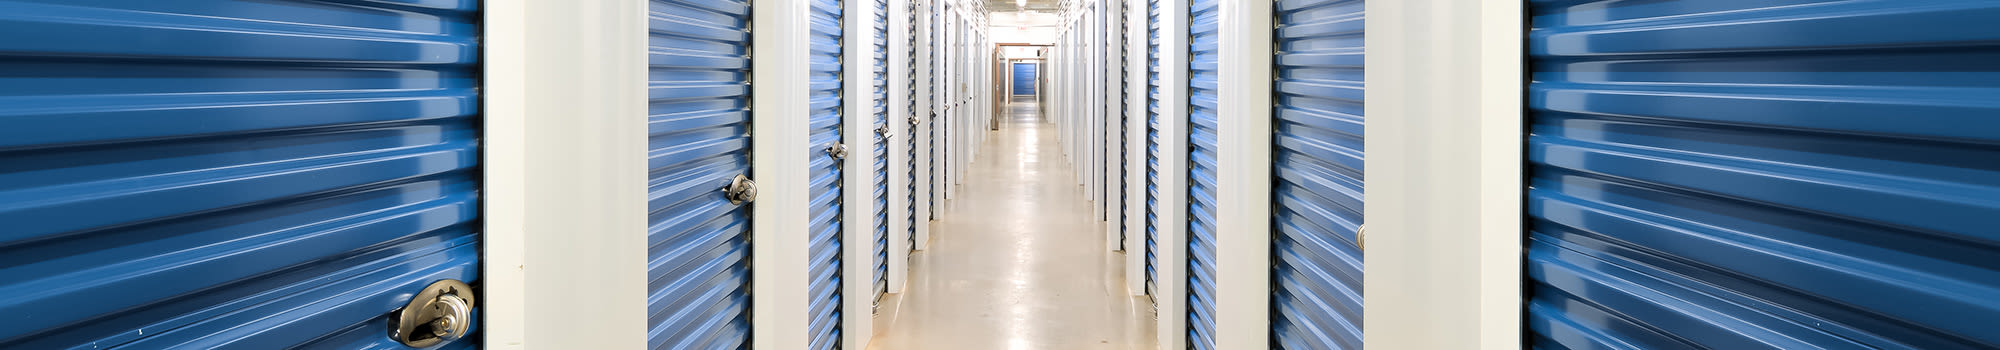 Climate controlled storage at Hawai'i Self Storage in Honolulu